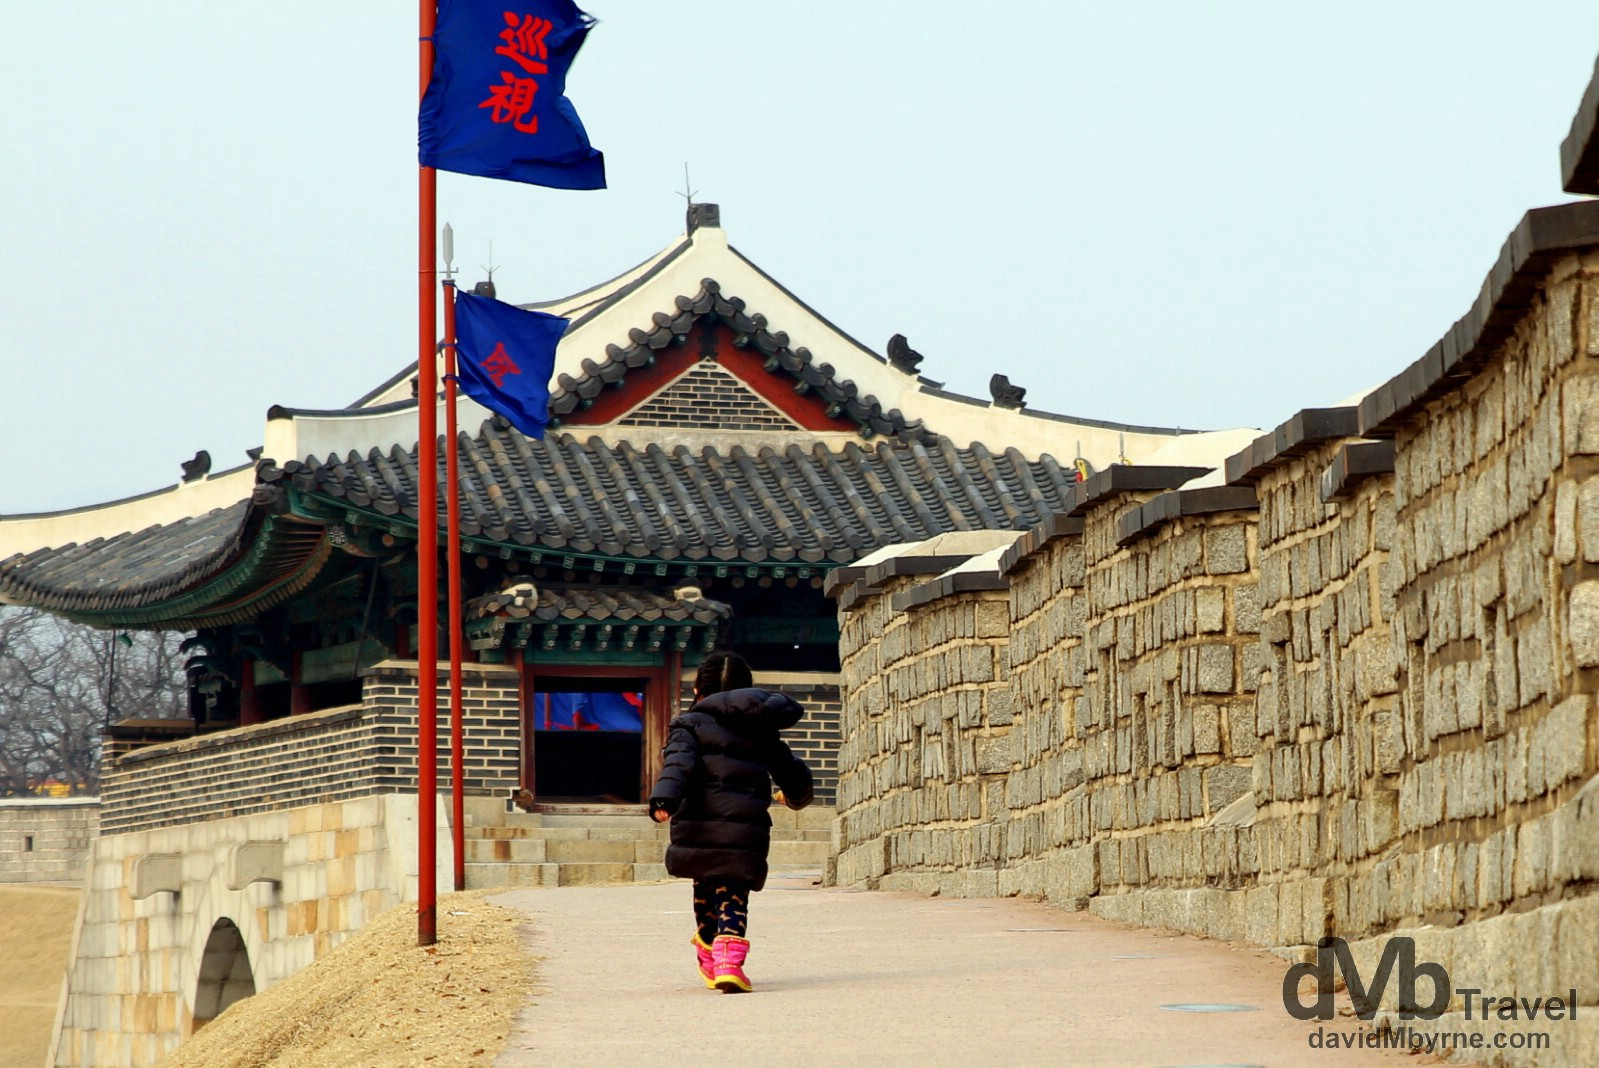 A young girl walks a section of the Suwon Hwaseong Fortress in Suwon, South Korea. February 23rd, 2014.